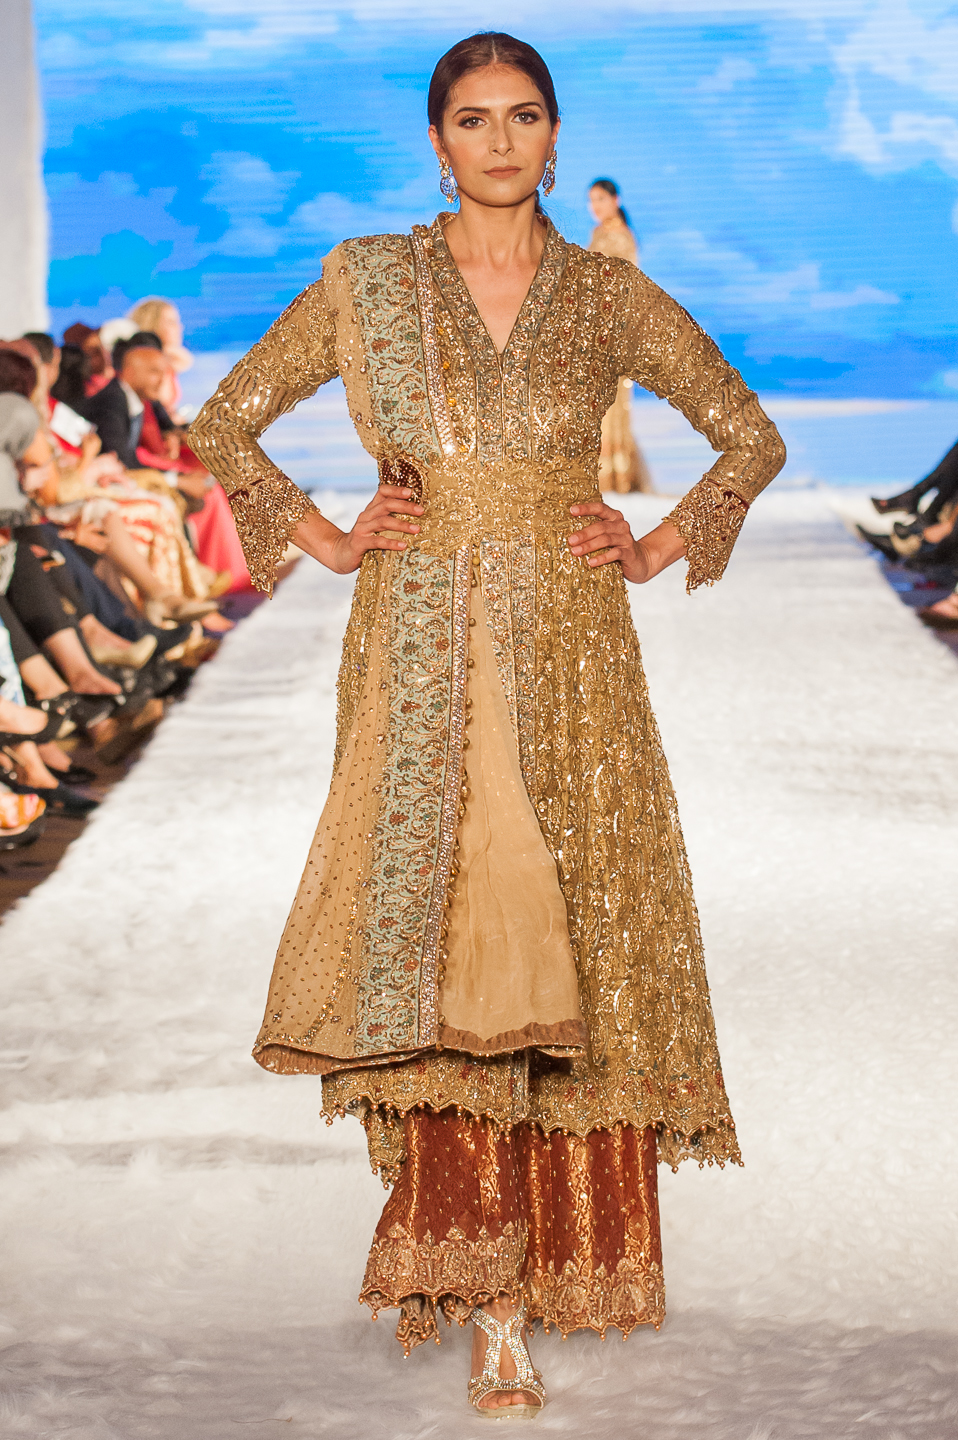 Umsha By Uzma Babar - Pakistan Fashion Week London - Photography by Shahid Malik